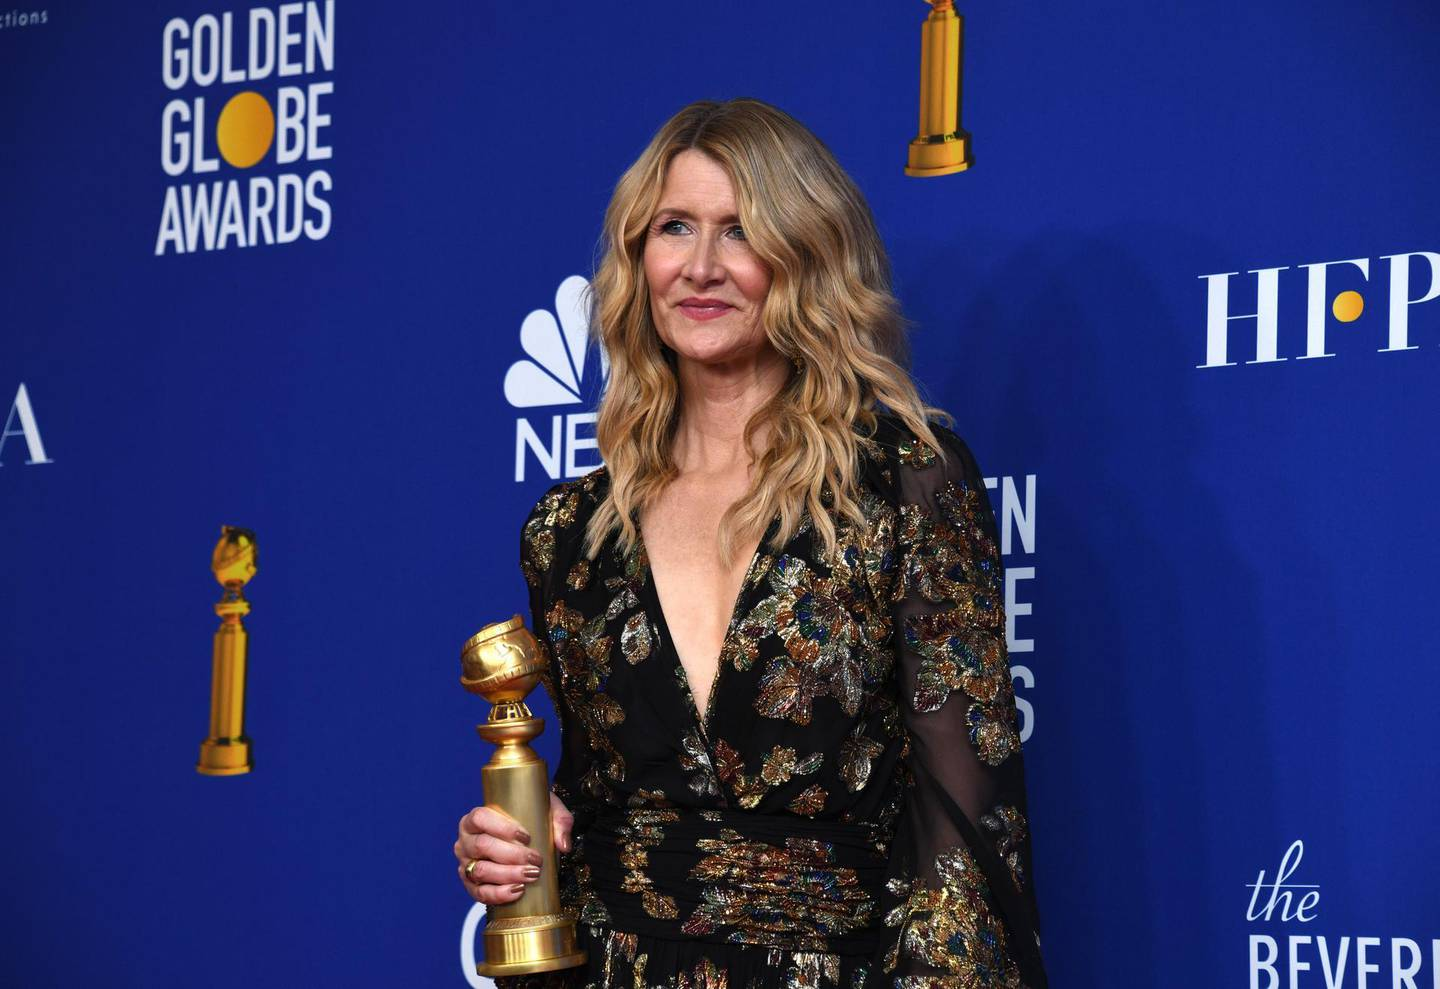 epa08106171 Laura Dern poses with the award for Best Performance By An Actress In a Supporting Role In Any Motion Picture in the press room during the 77th annual Golden Globe Awards ceremony at the Beverly Hilton Hotel, in Beverly Hills, California, USA, 05 January 2020.  EPA/CHRISTIAN MONTERROSA